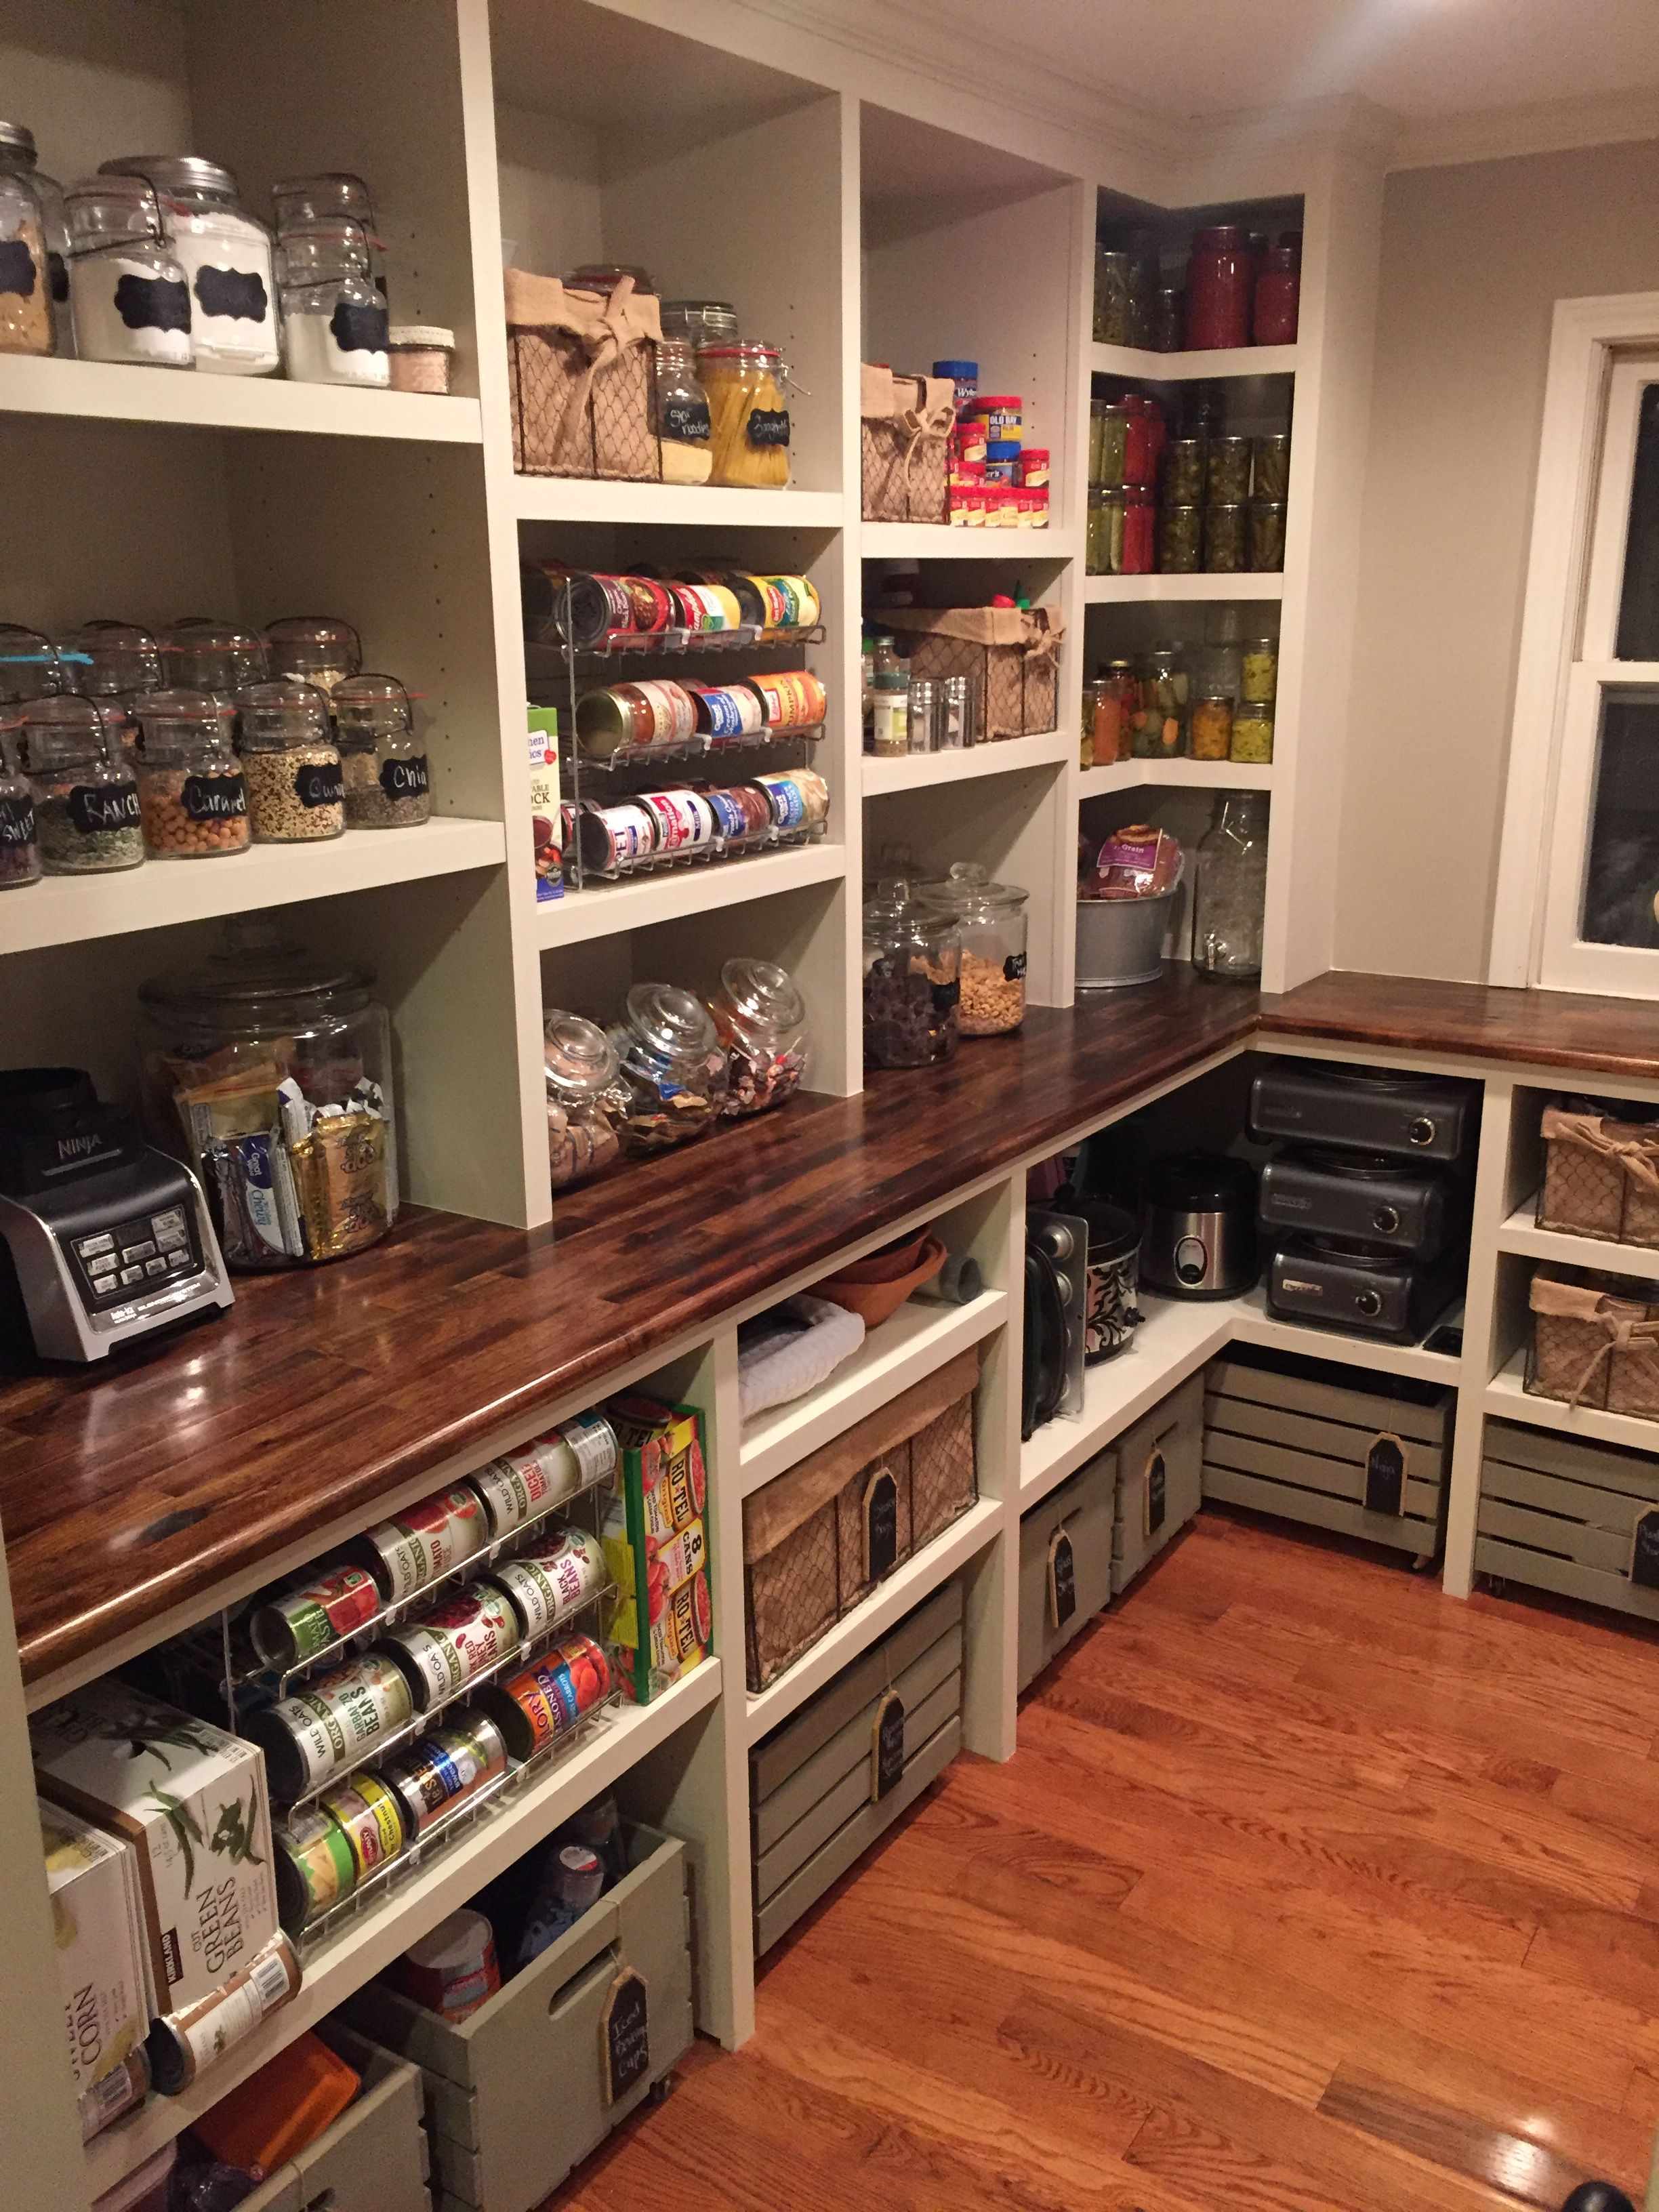 My perfect pantry created by my amazing husband! Thanks